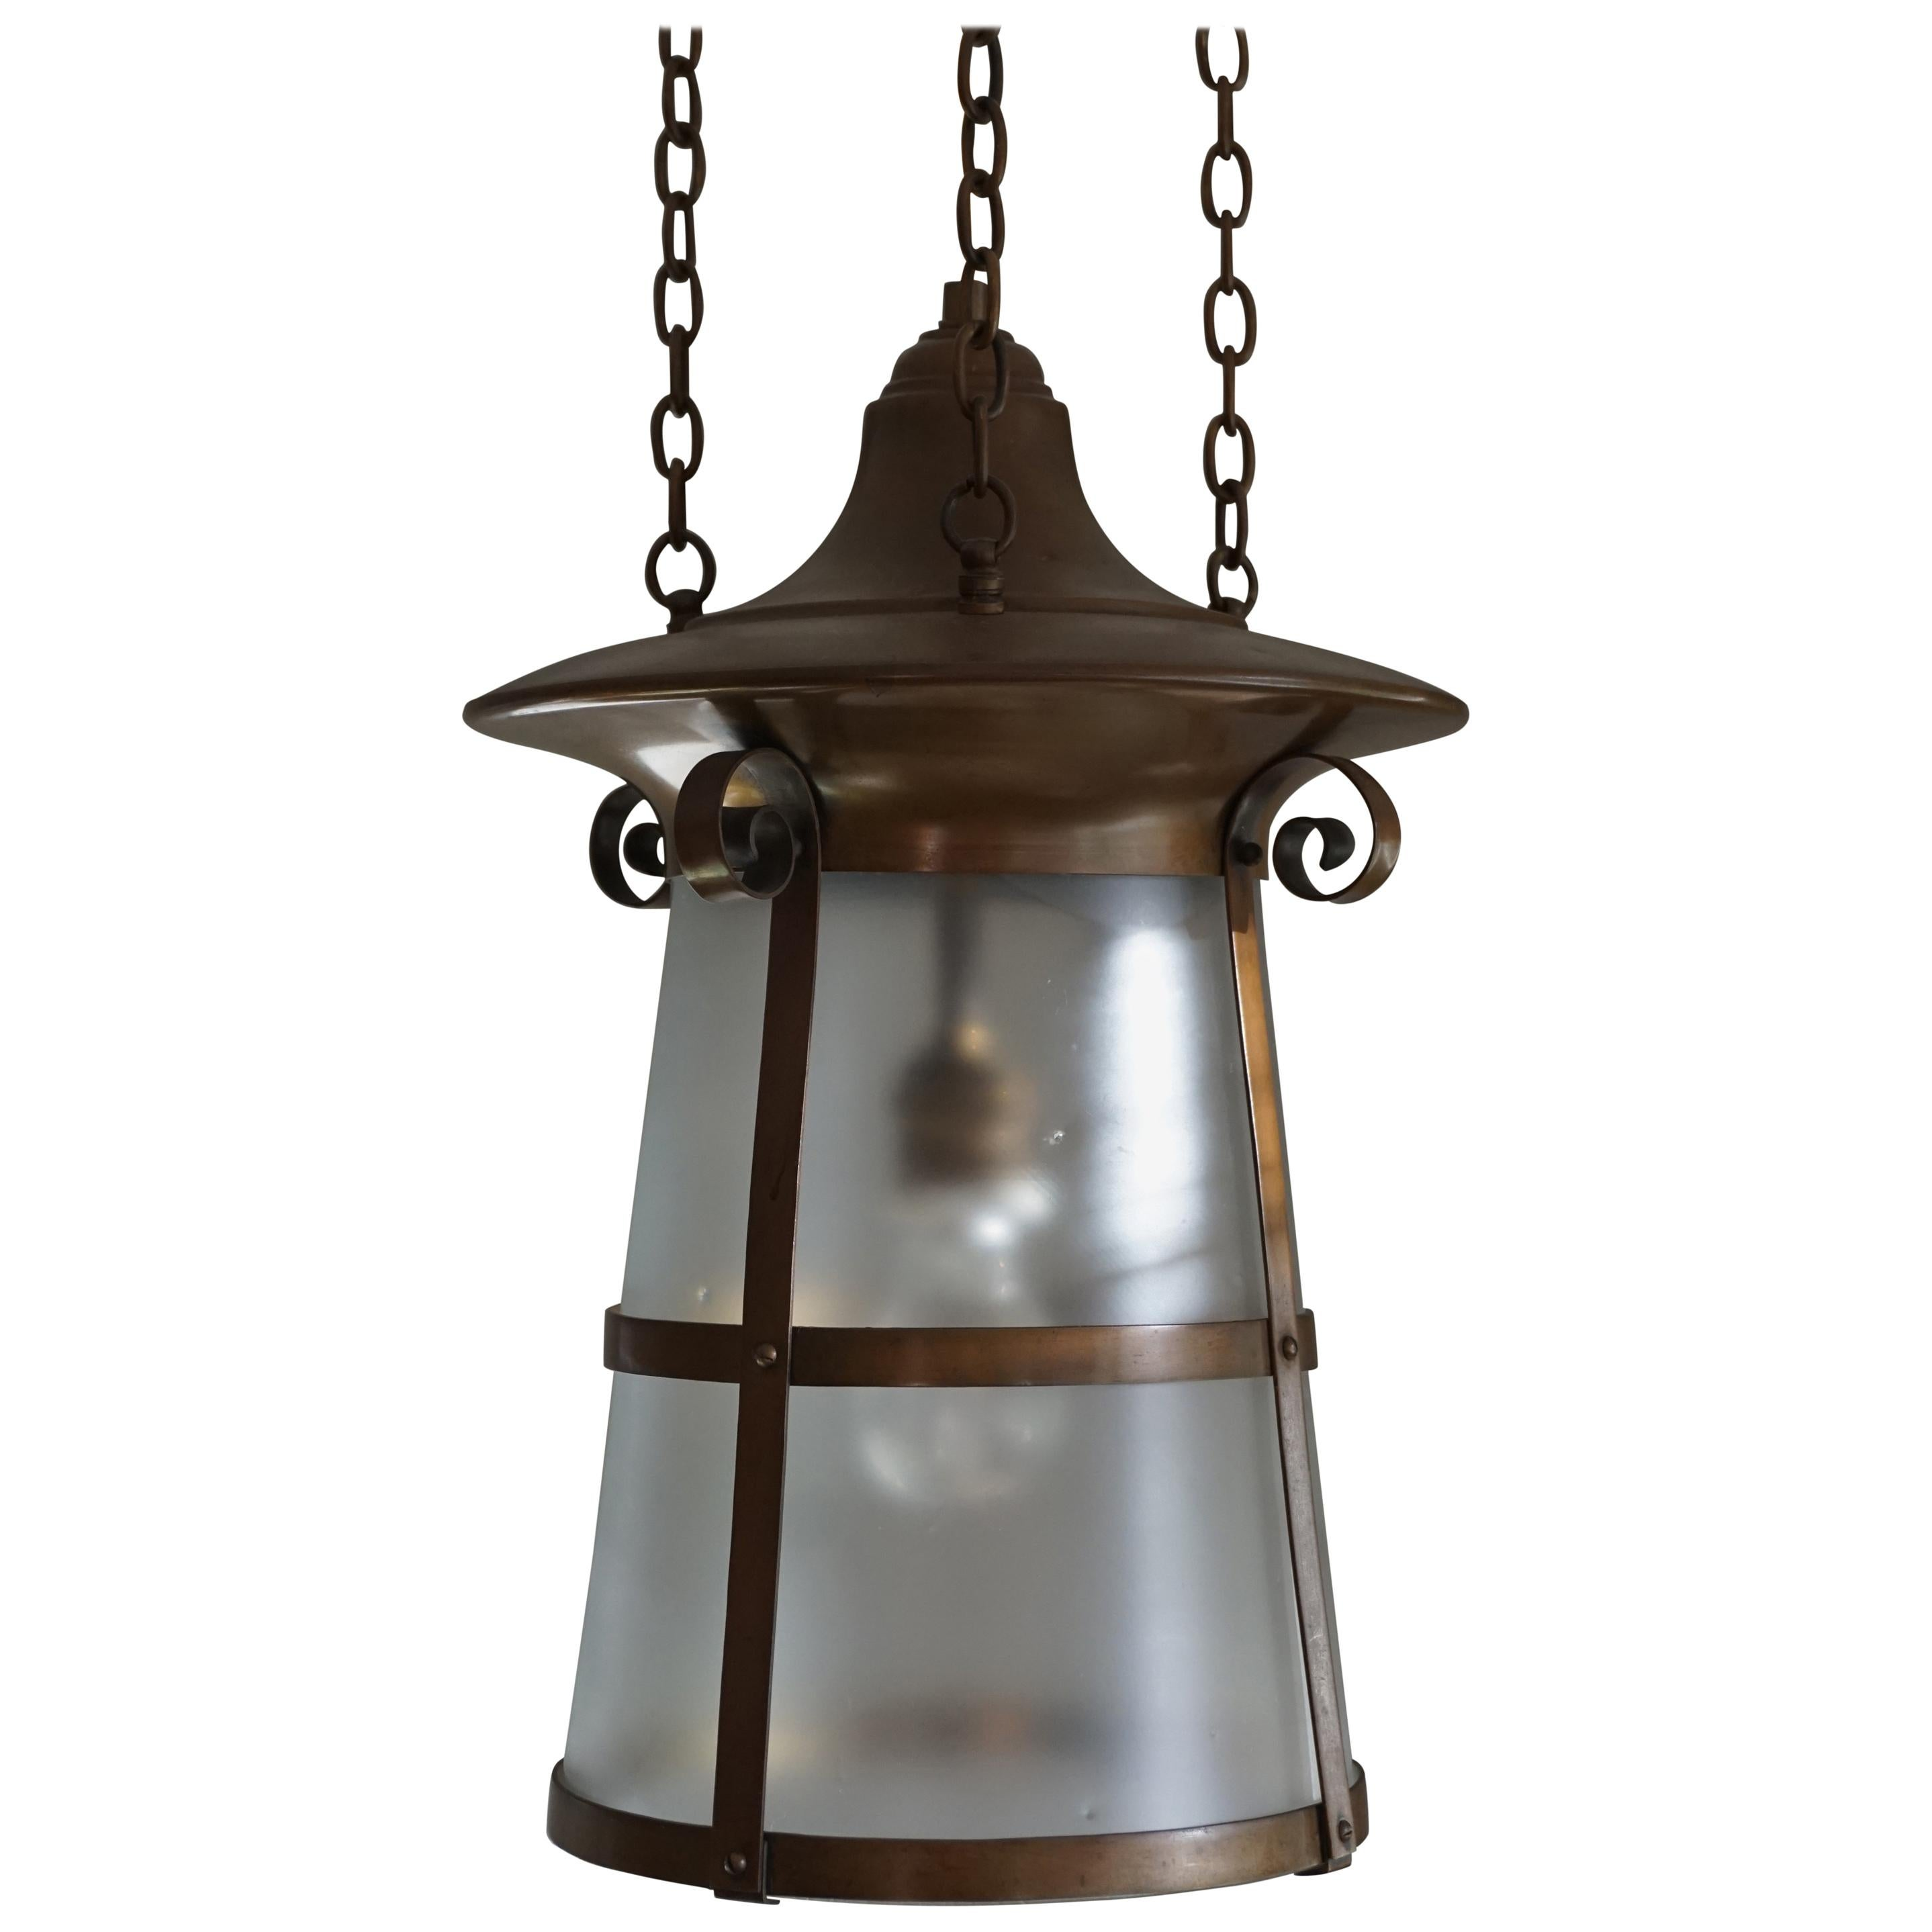 Highly stylish brass and glass arts and crafts pendant light fixture 1900 1910 for sale at 1stdibs